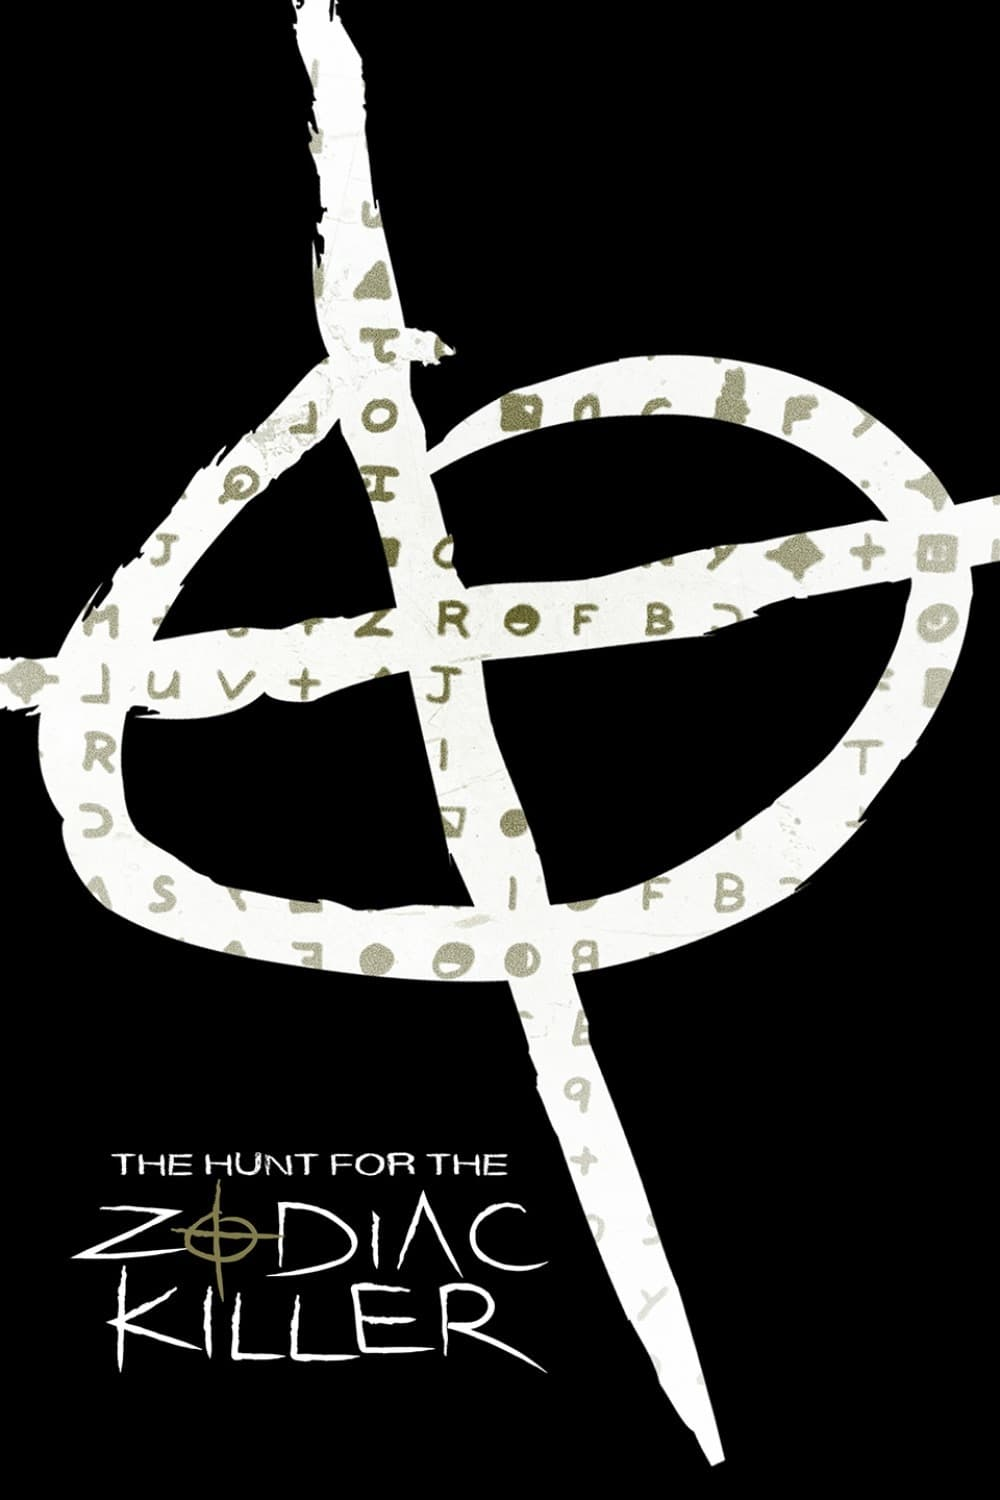 The Hunt for the Zodiac Killer (2017)